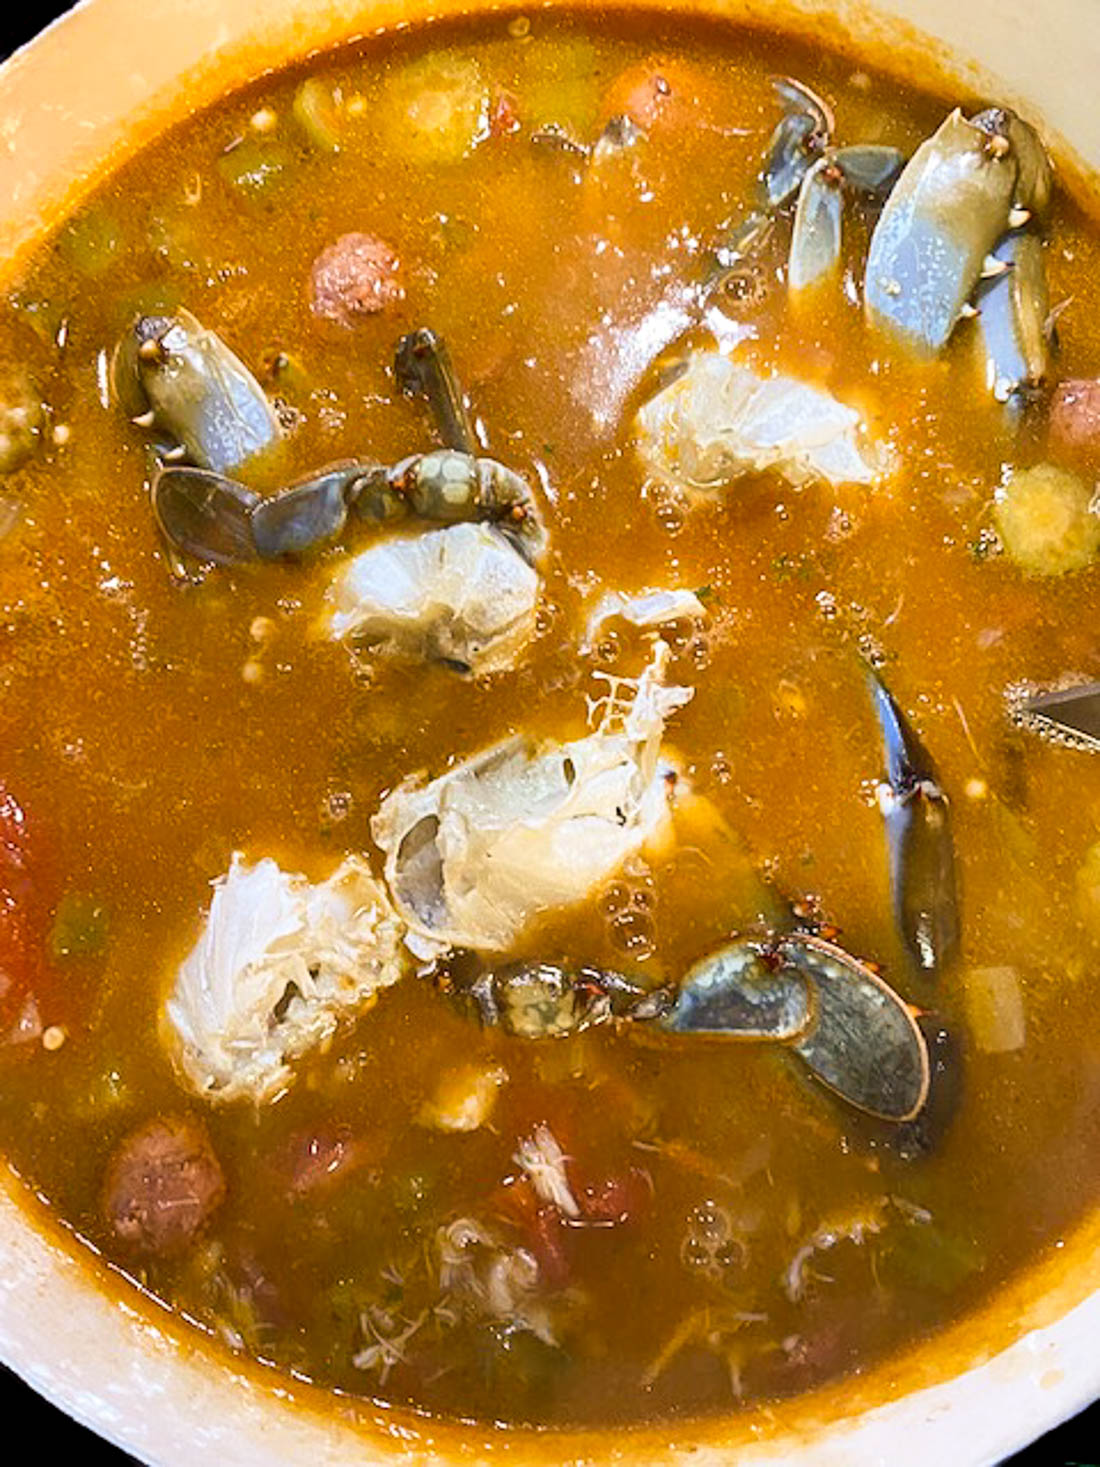 Blue crabs being added to a pot full of Creole gumbo.